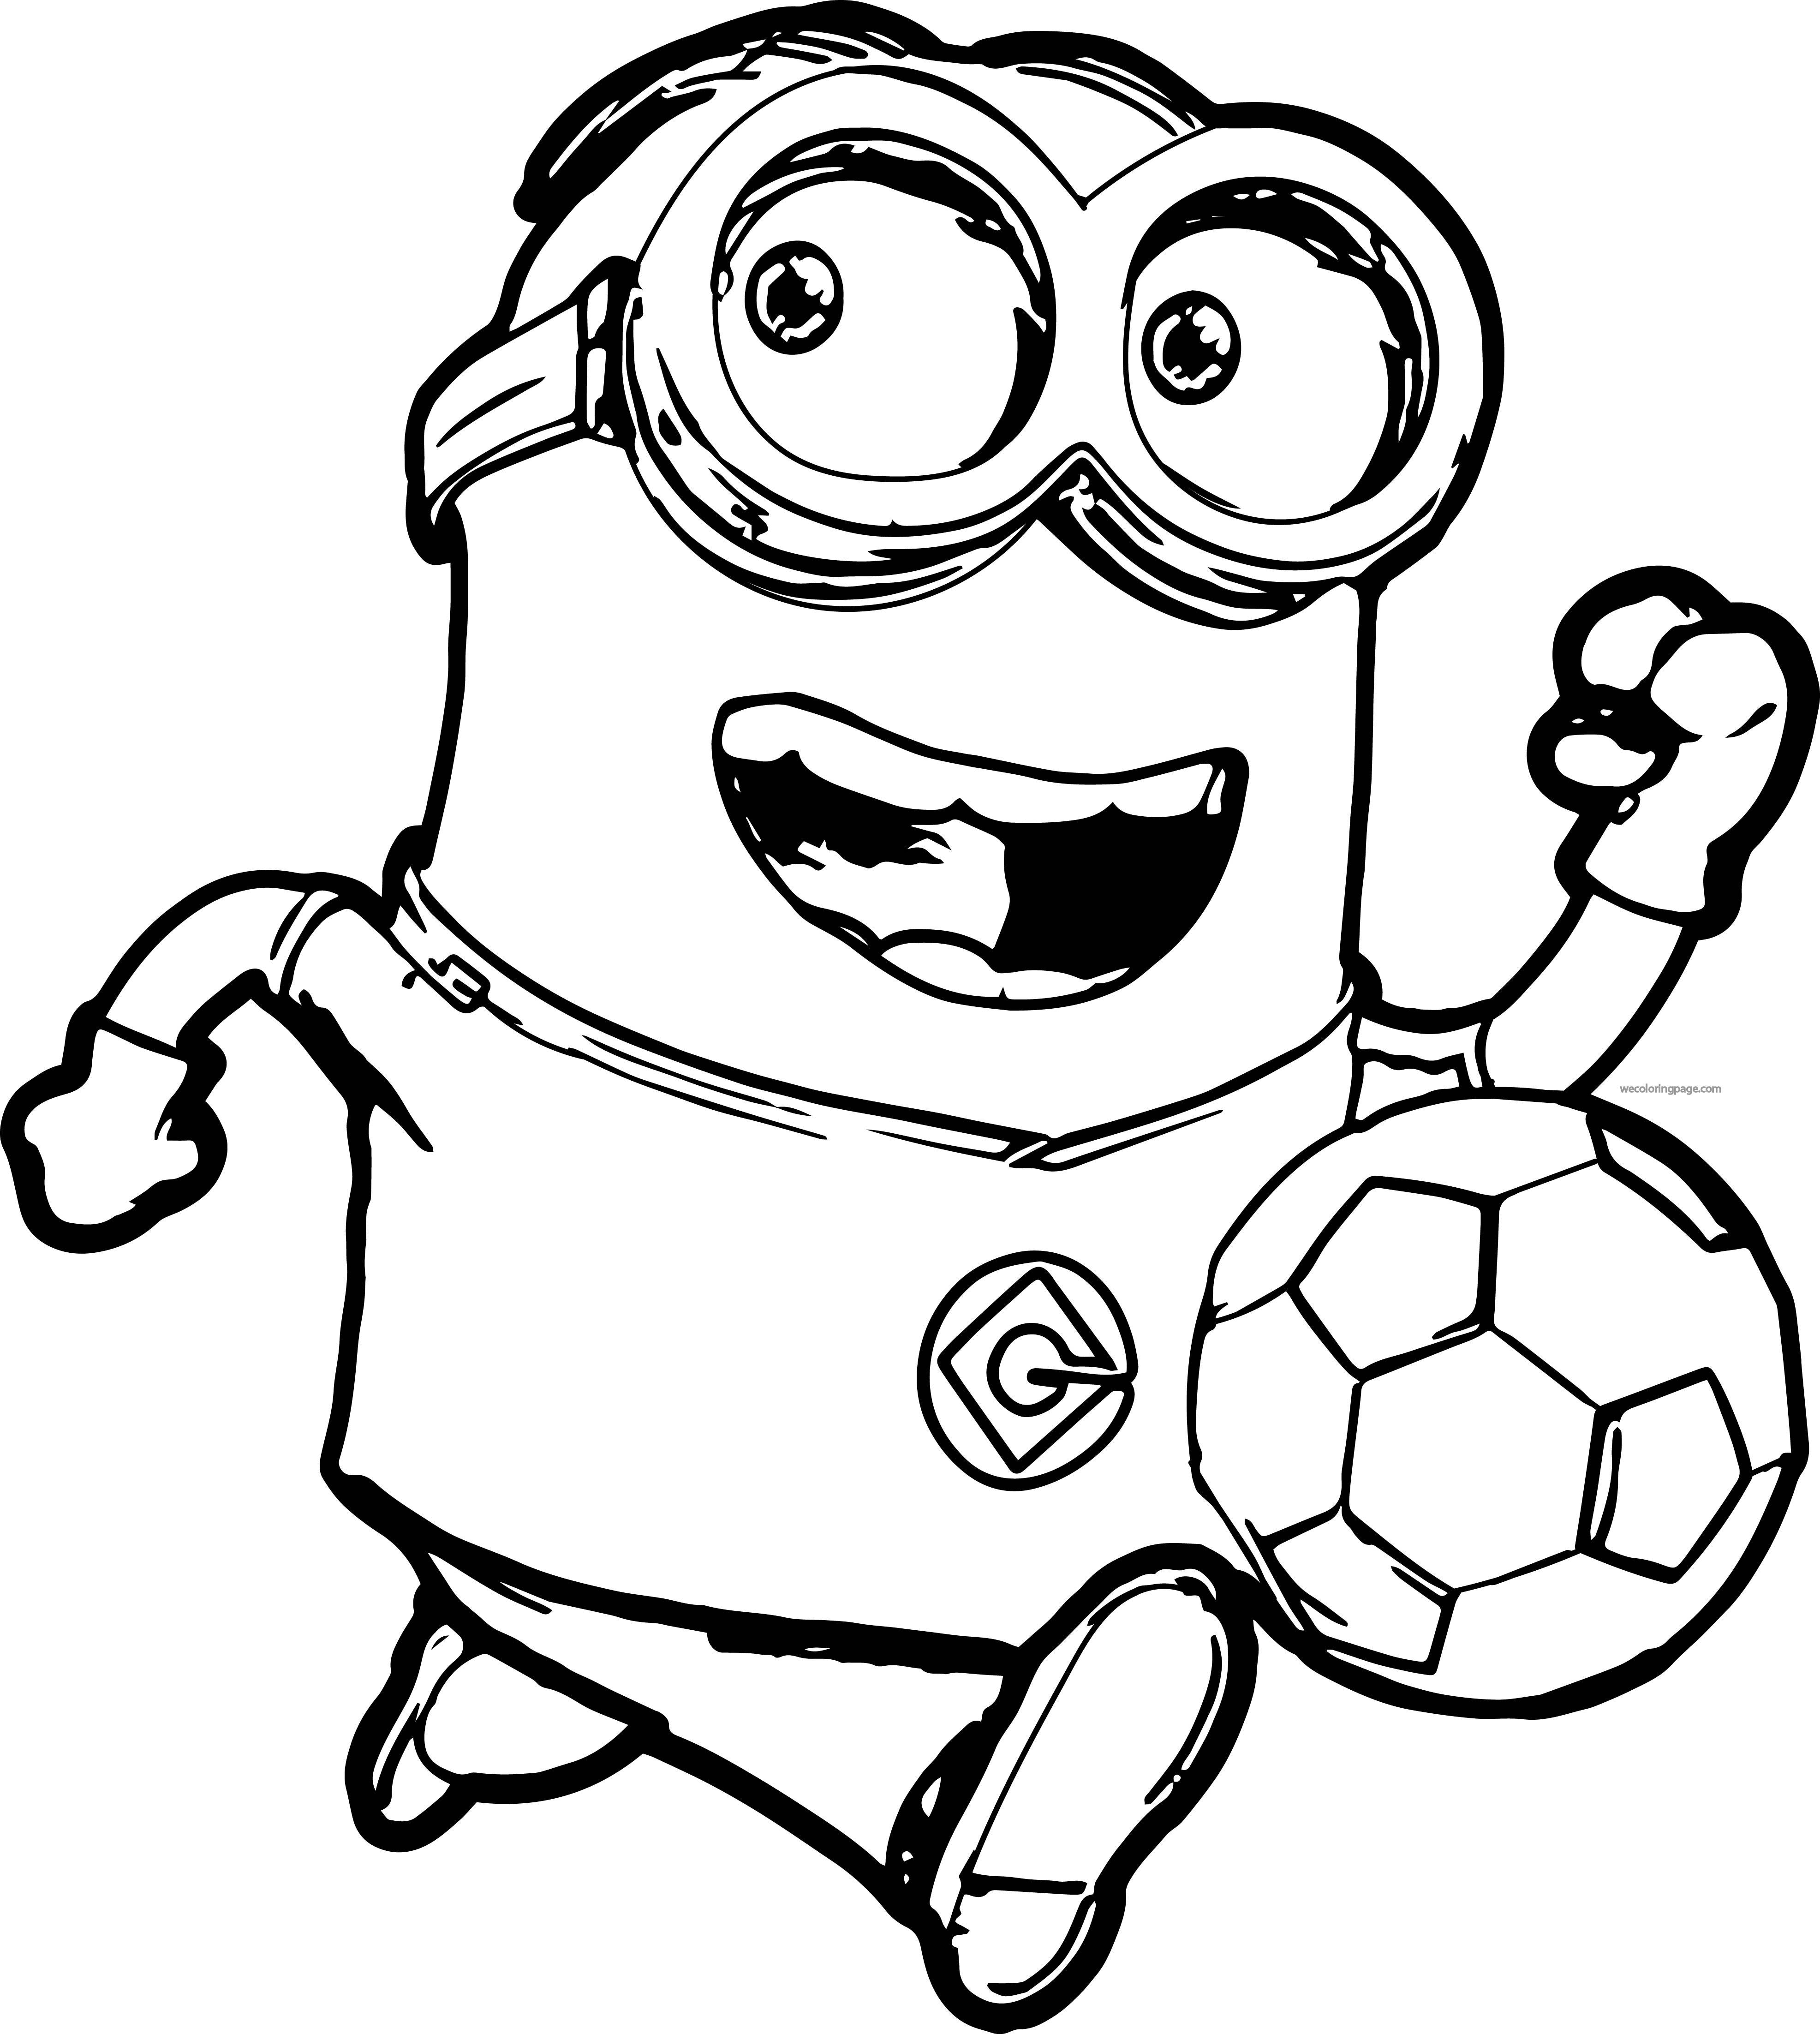 coloring for kids easy easy coloring pages for kids coloring home for kids coloring easy